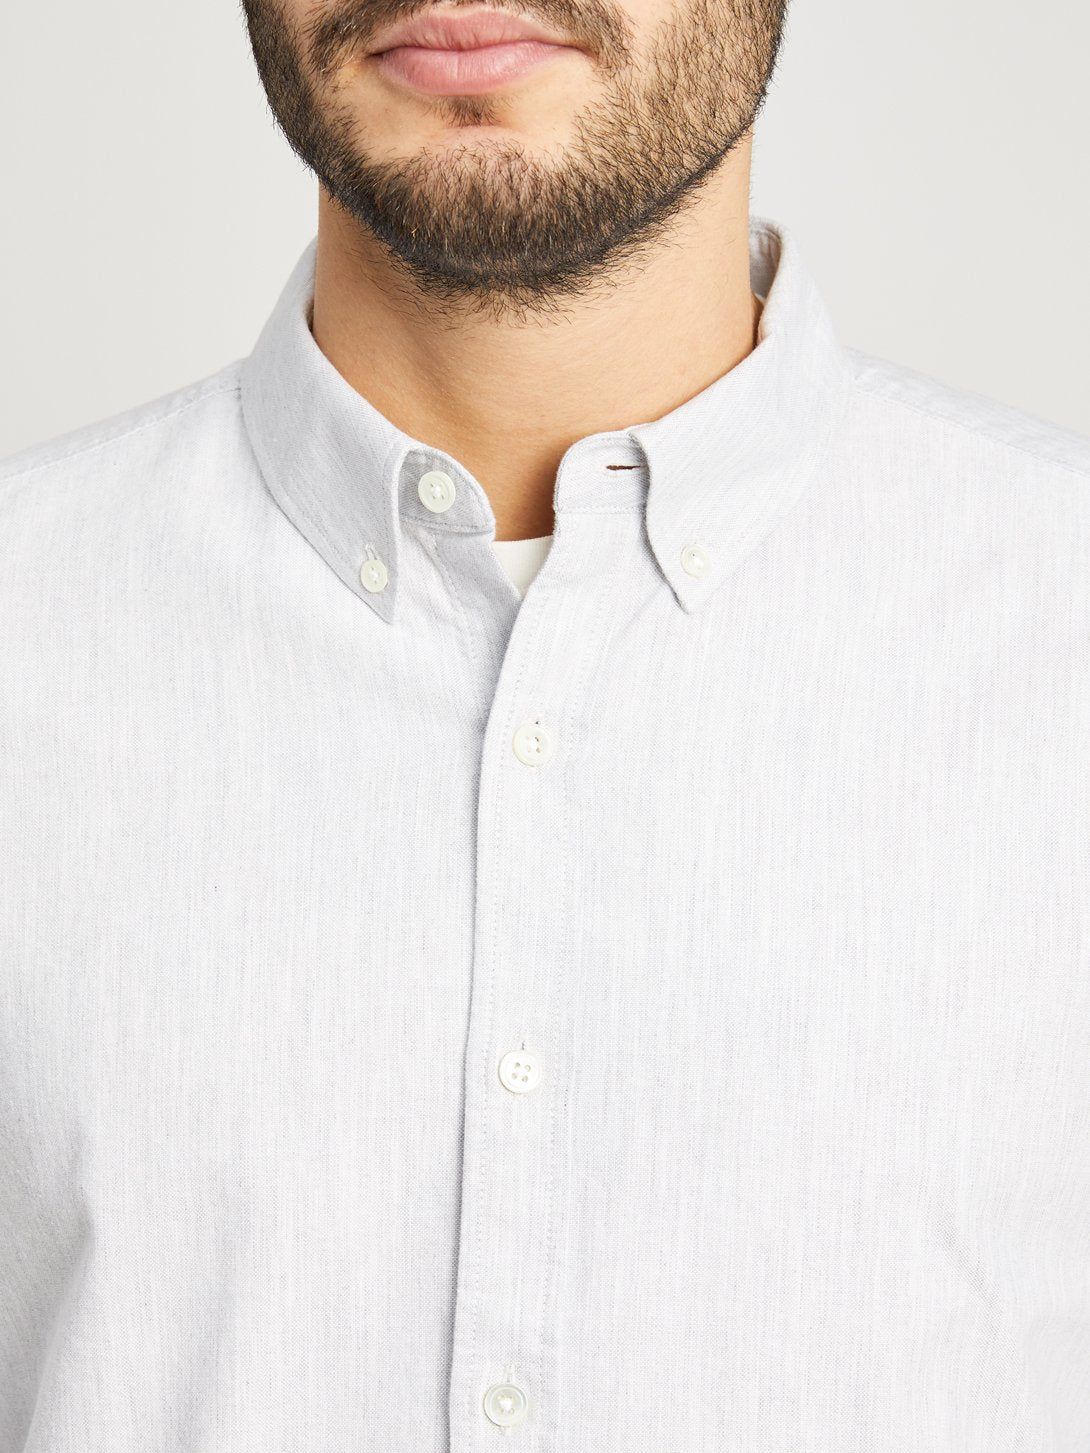 Heather Grey button down shirt for men fulton heather oxford shirt ons clothing